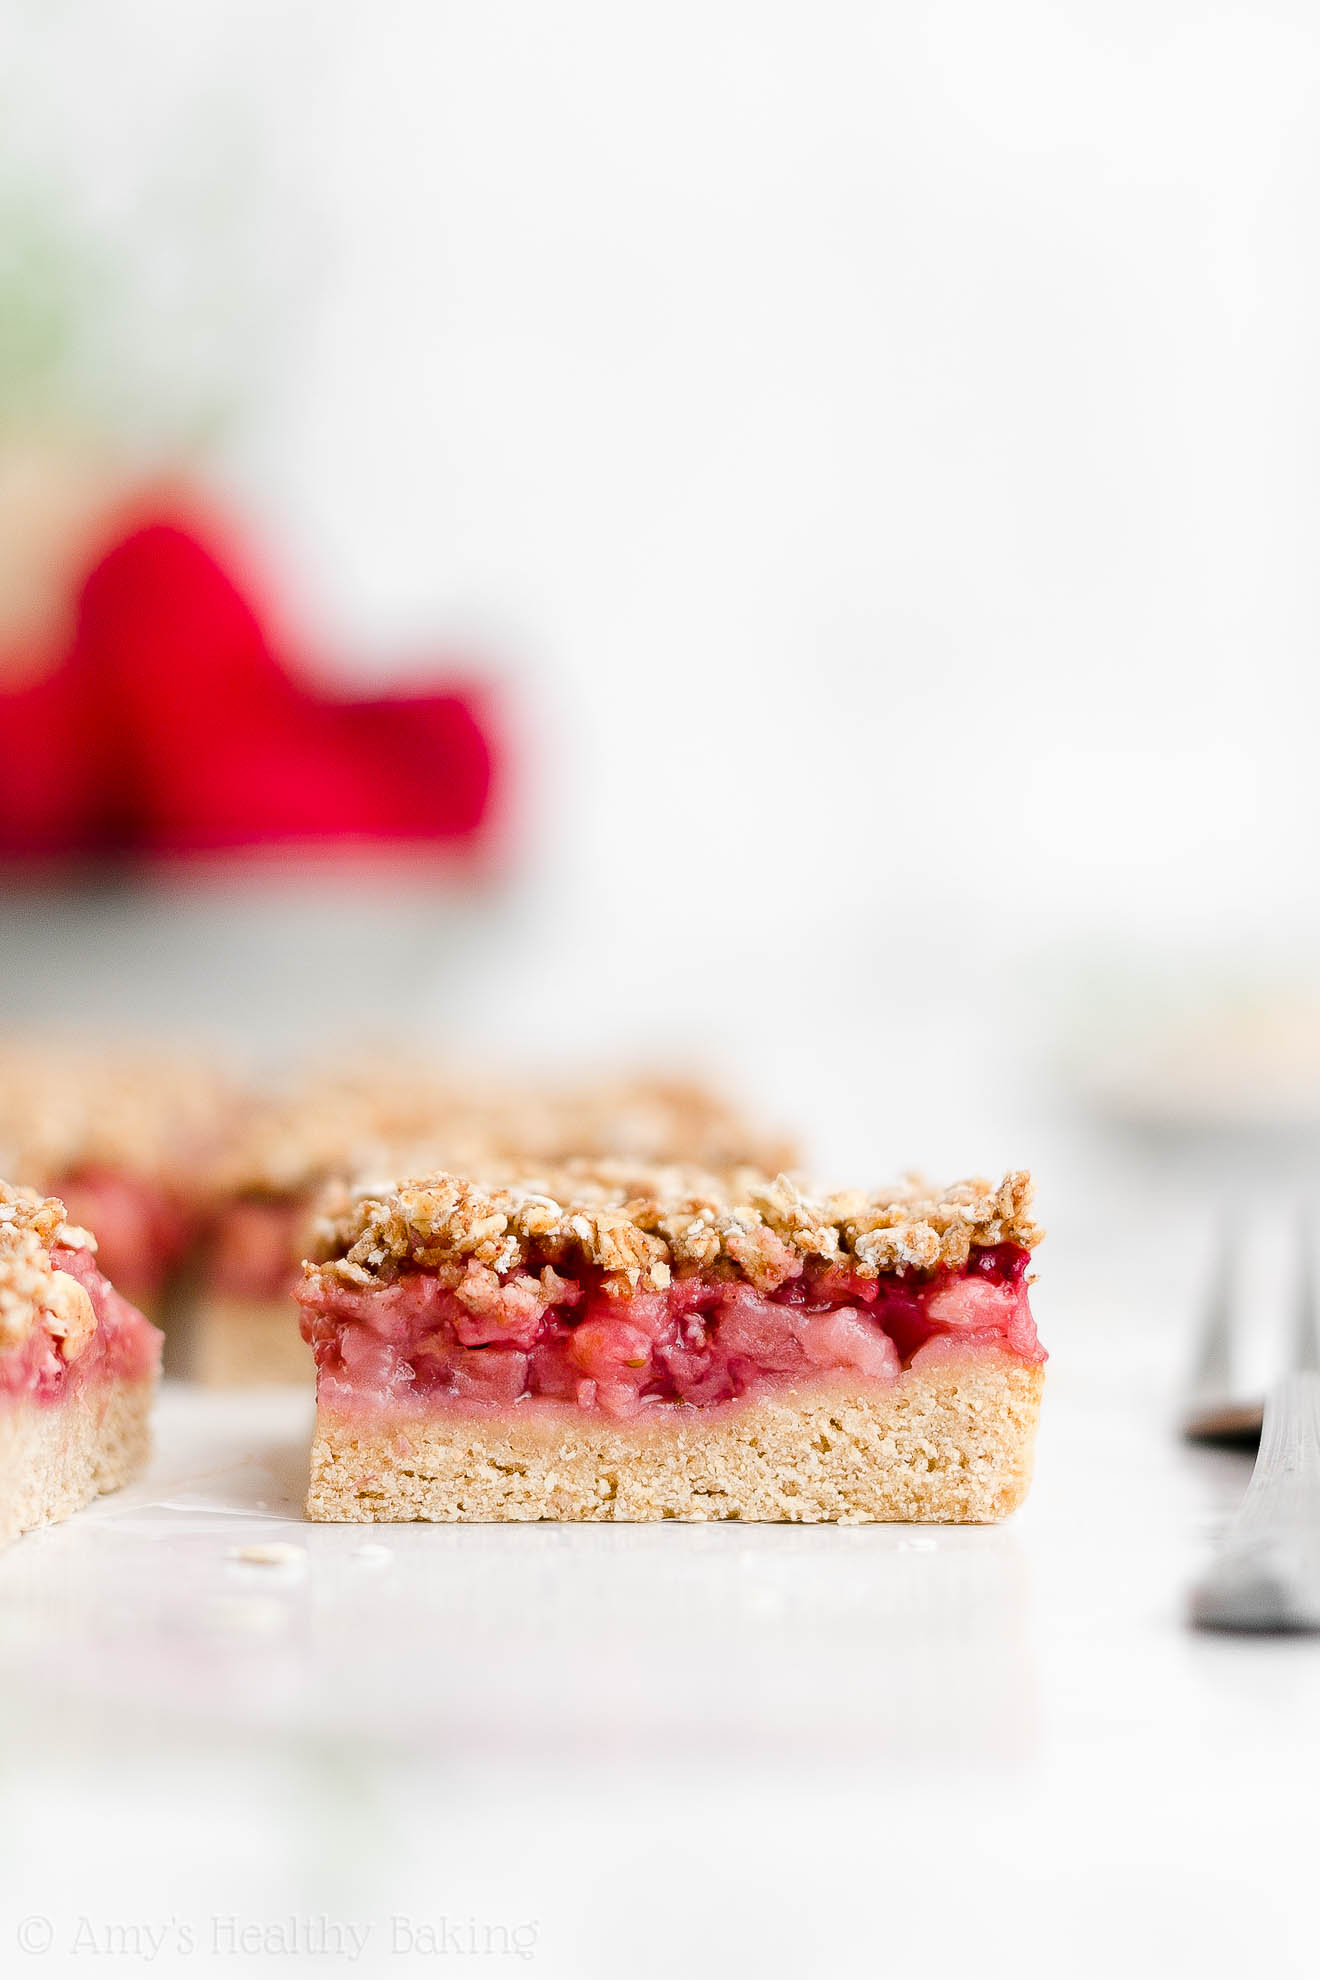 Best Healthy Whole Wheat Low Calorie Egg Free Strawberry Oat Crumble Bars